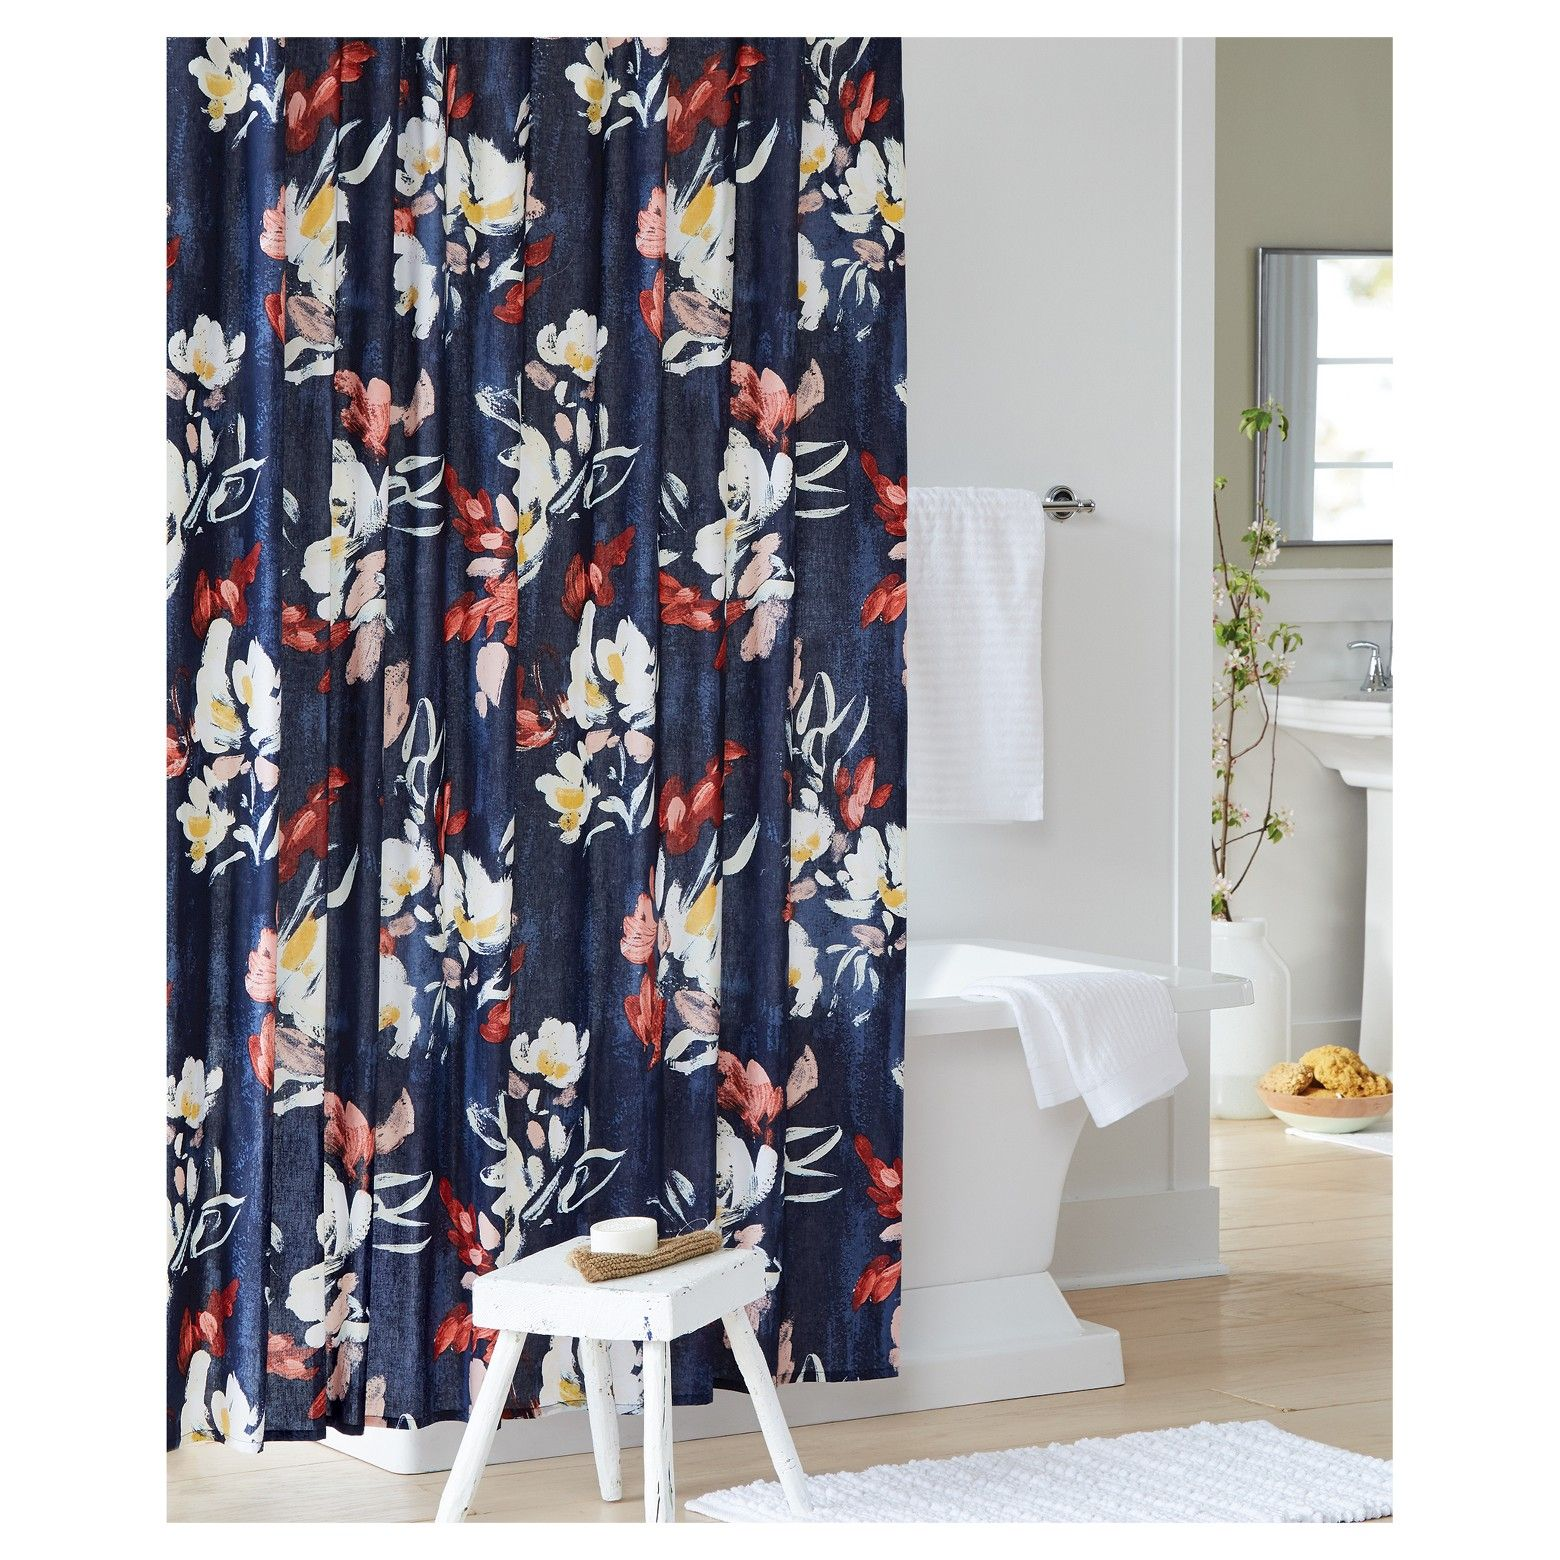 I Reallllly Like This Shower Curtain But Think Id Need To Wait For A Bigger Bathroom Because The Floral Pattern Is Great Could Take Over Smaller